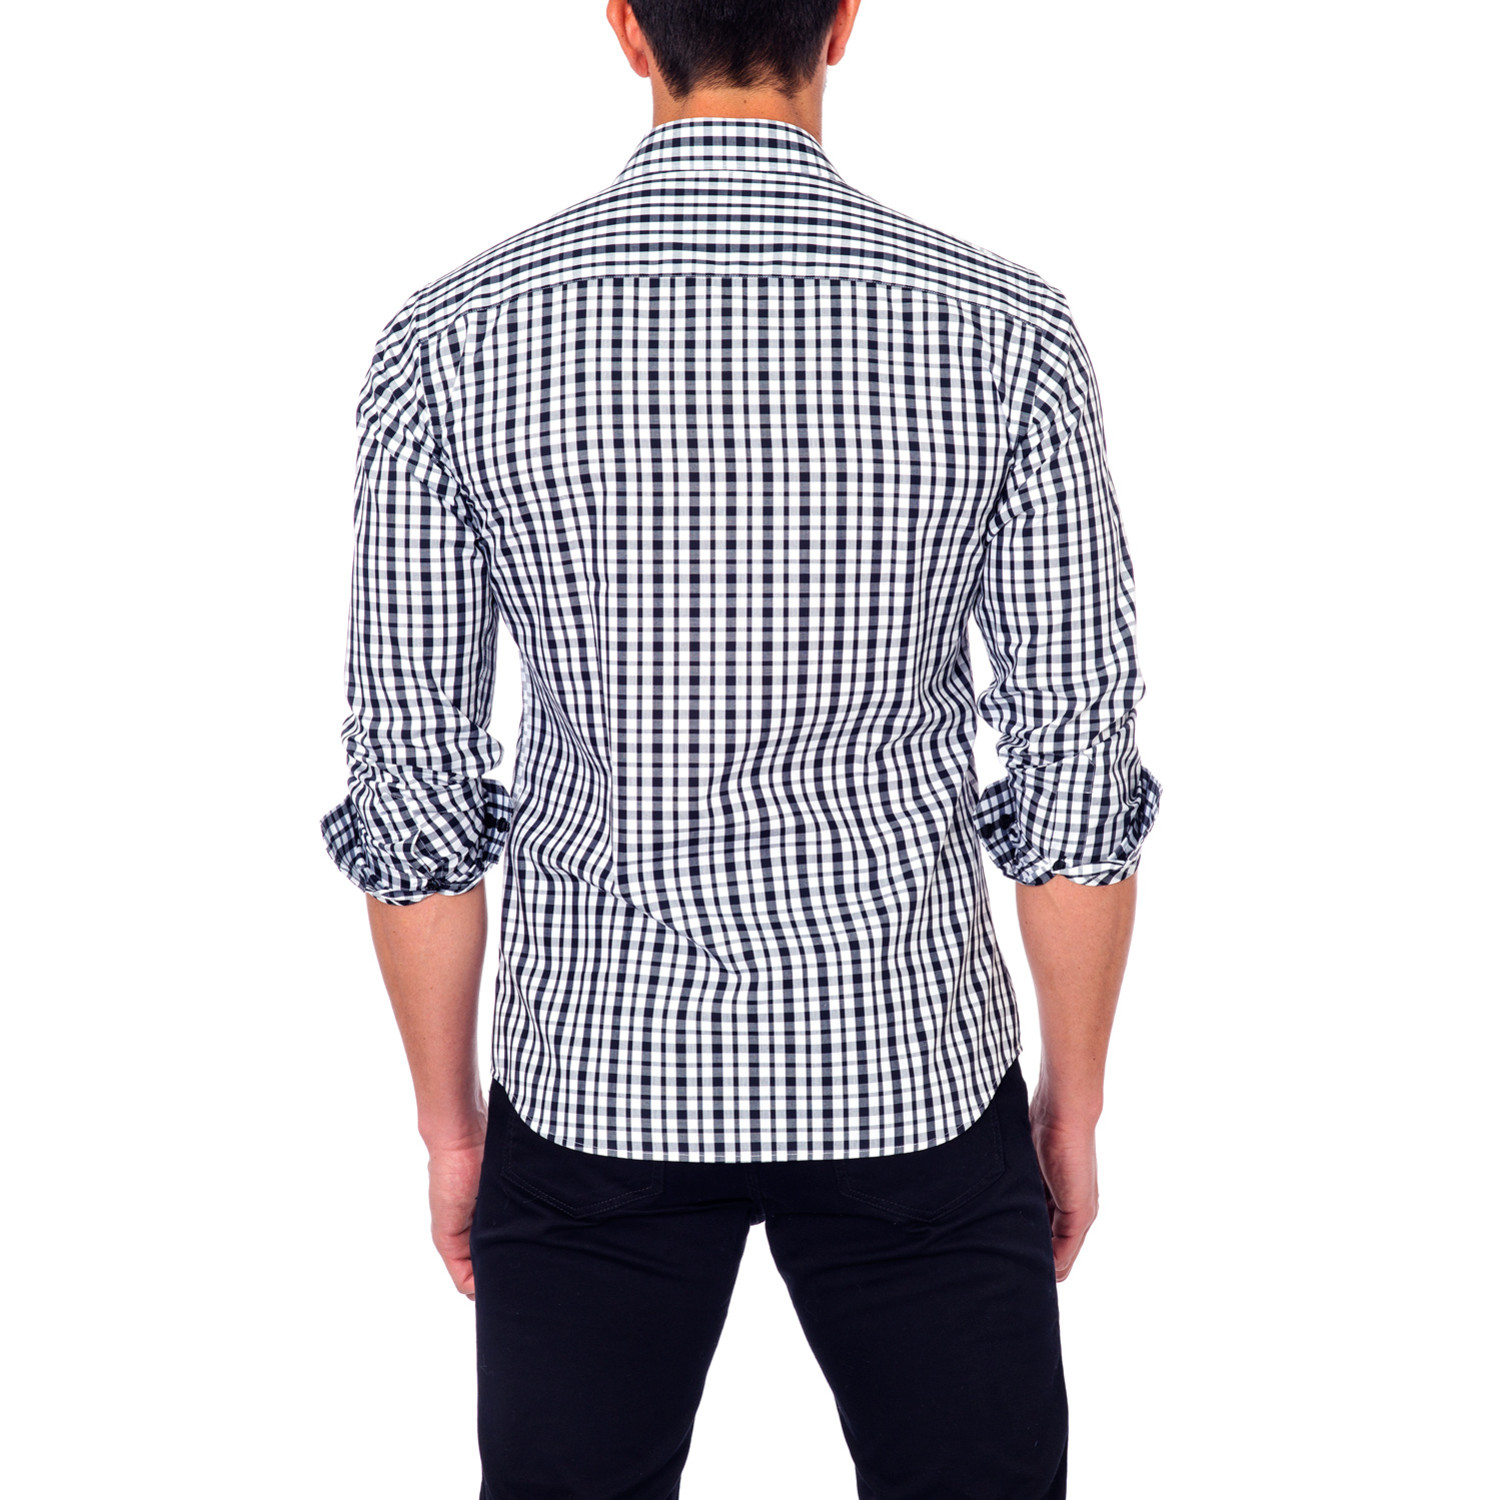 Mixed plaid button up shirt black white s for Mixed plaid shirt mens